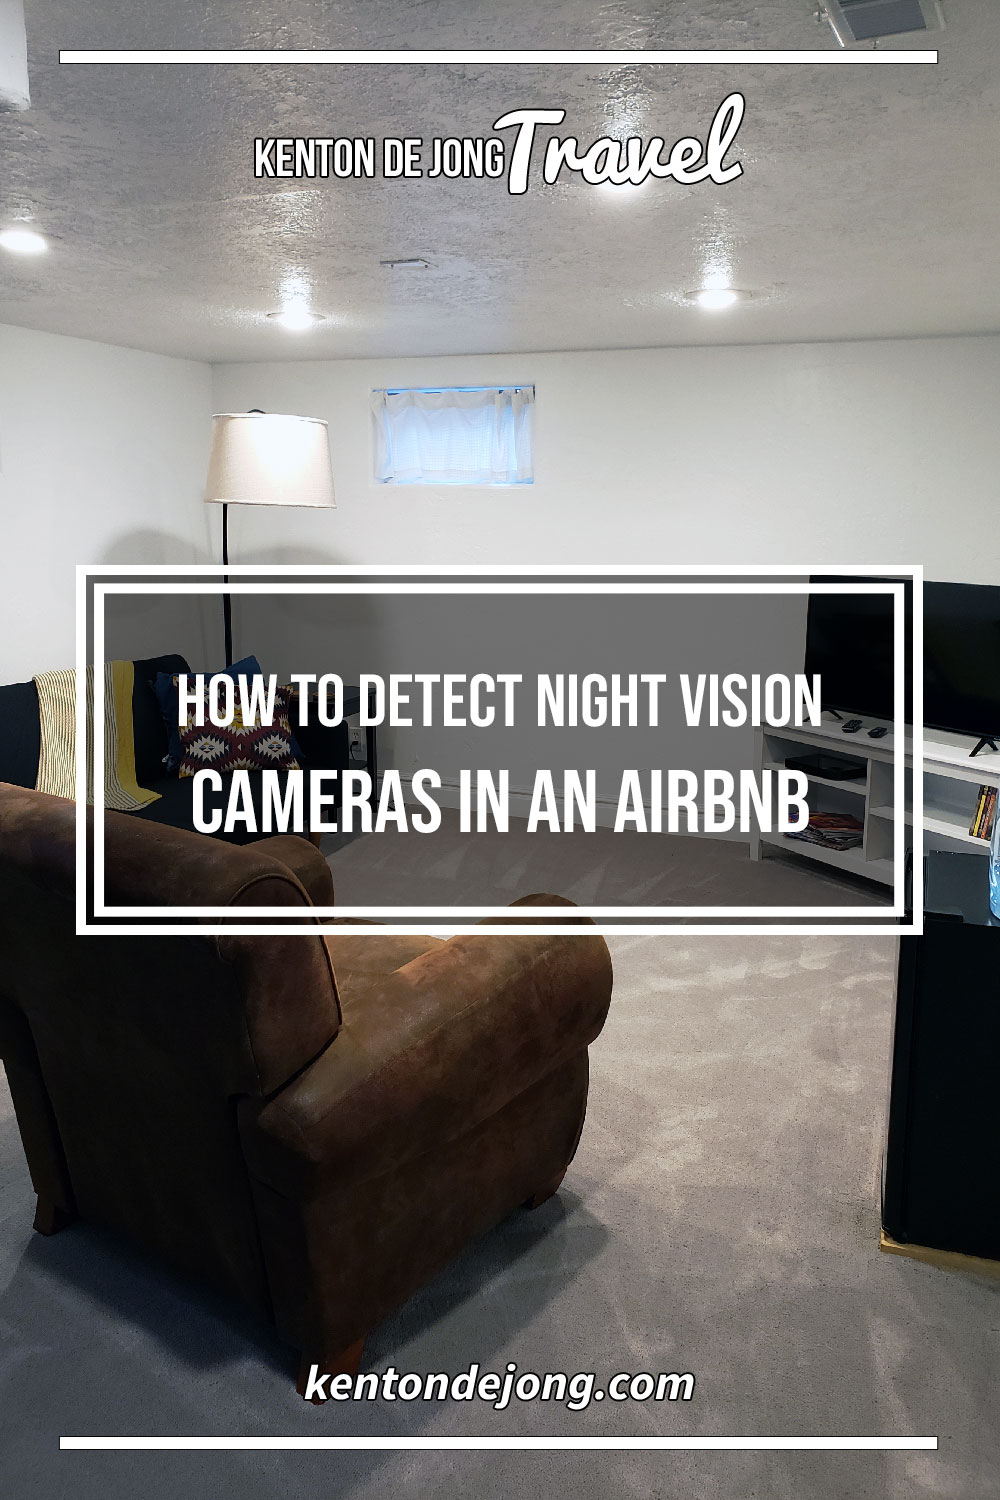 How to Detect Night Vision Cameras in an Airbnb